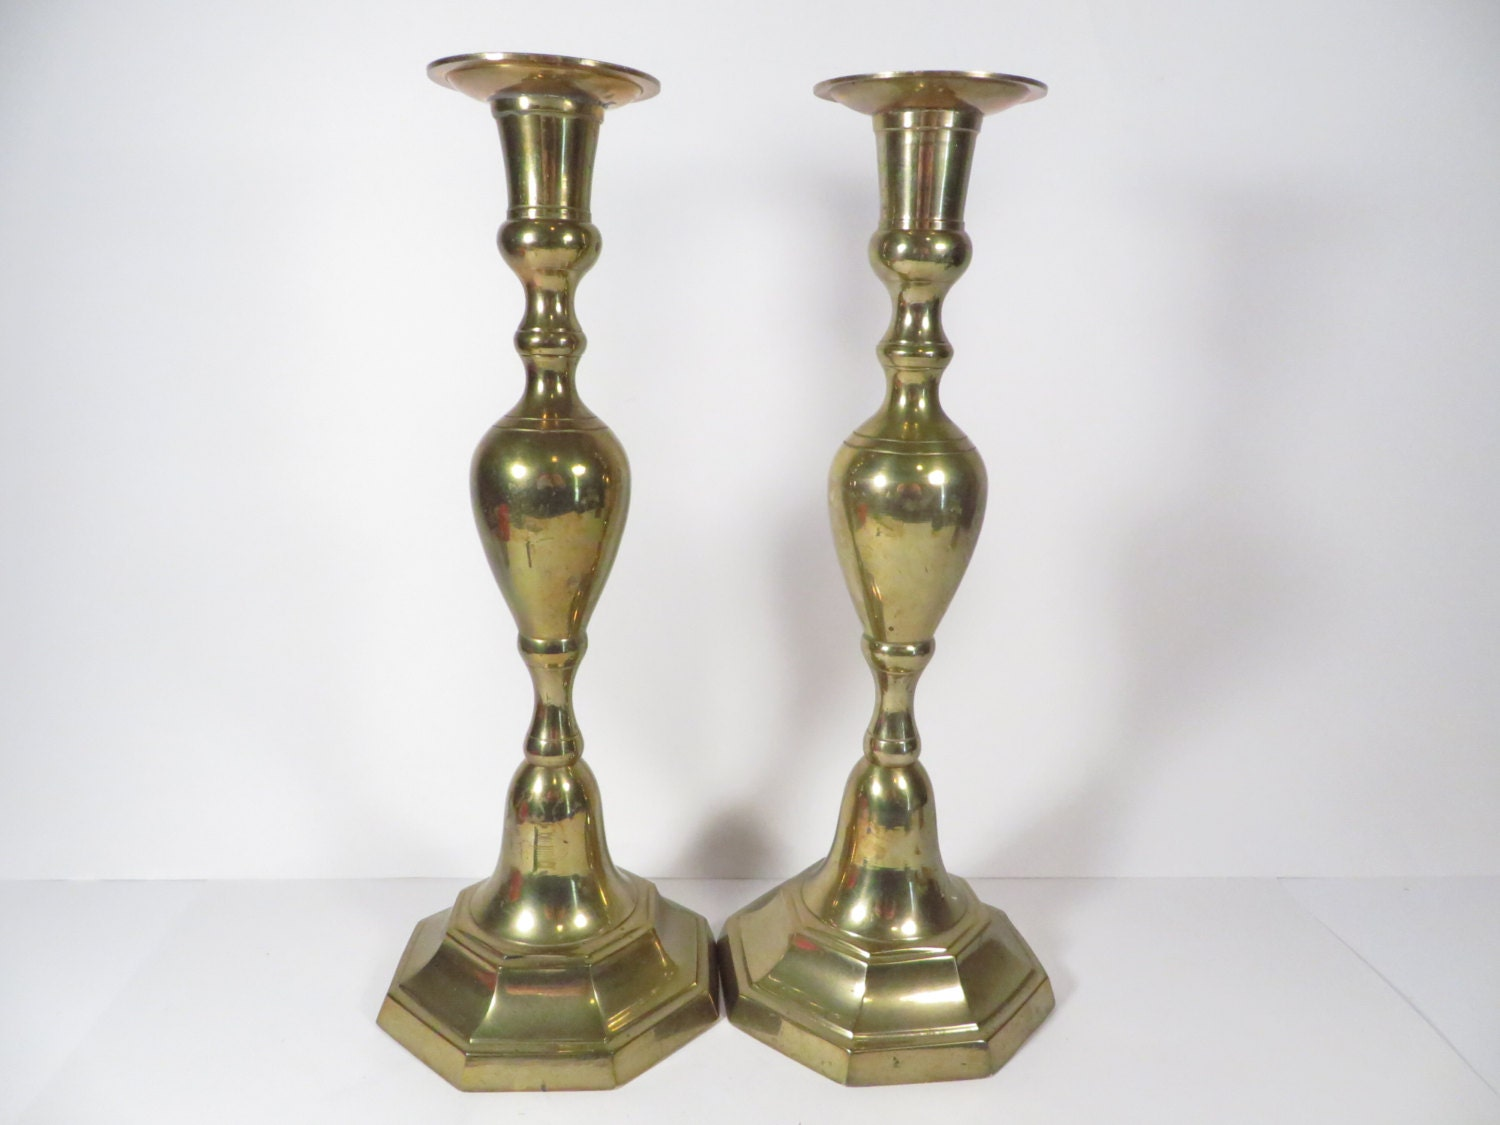 Find great deals on eBay for large brass candle holder. Shop with confidence.